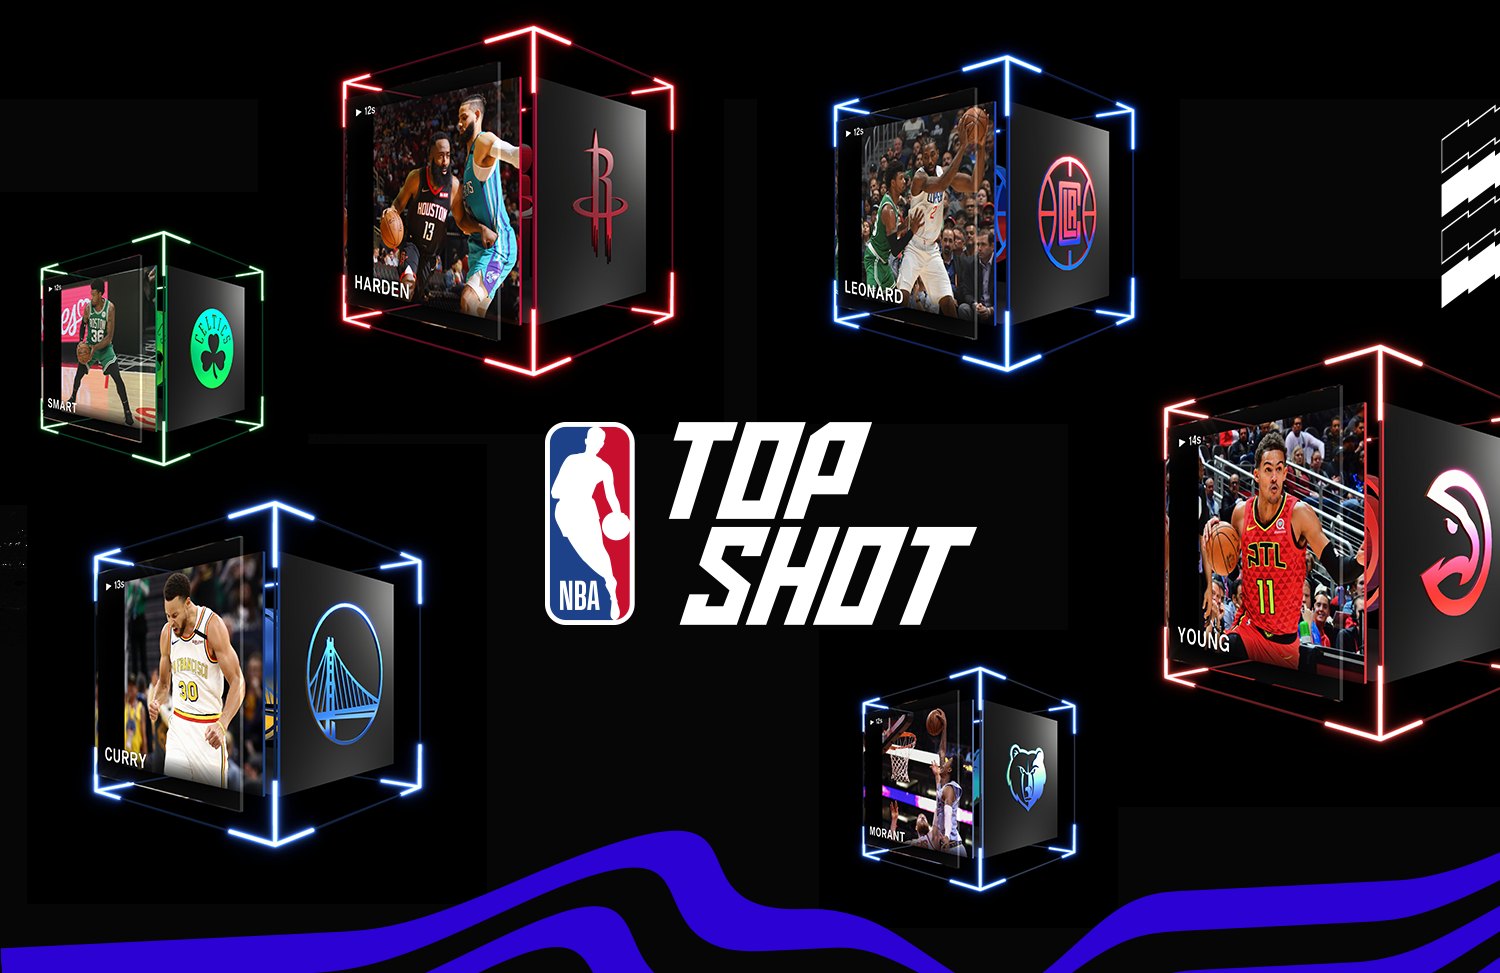 What to expect now that you're in the NBA Top Shot beta program. Have fun and give the team feedback!